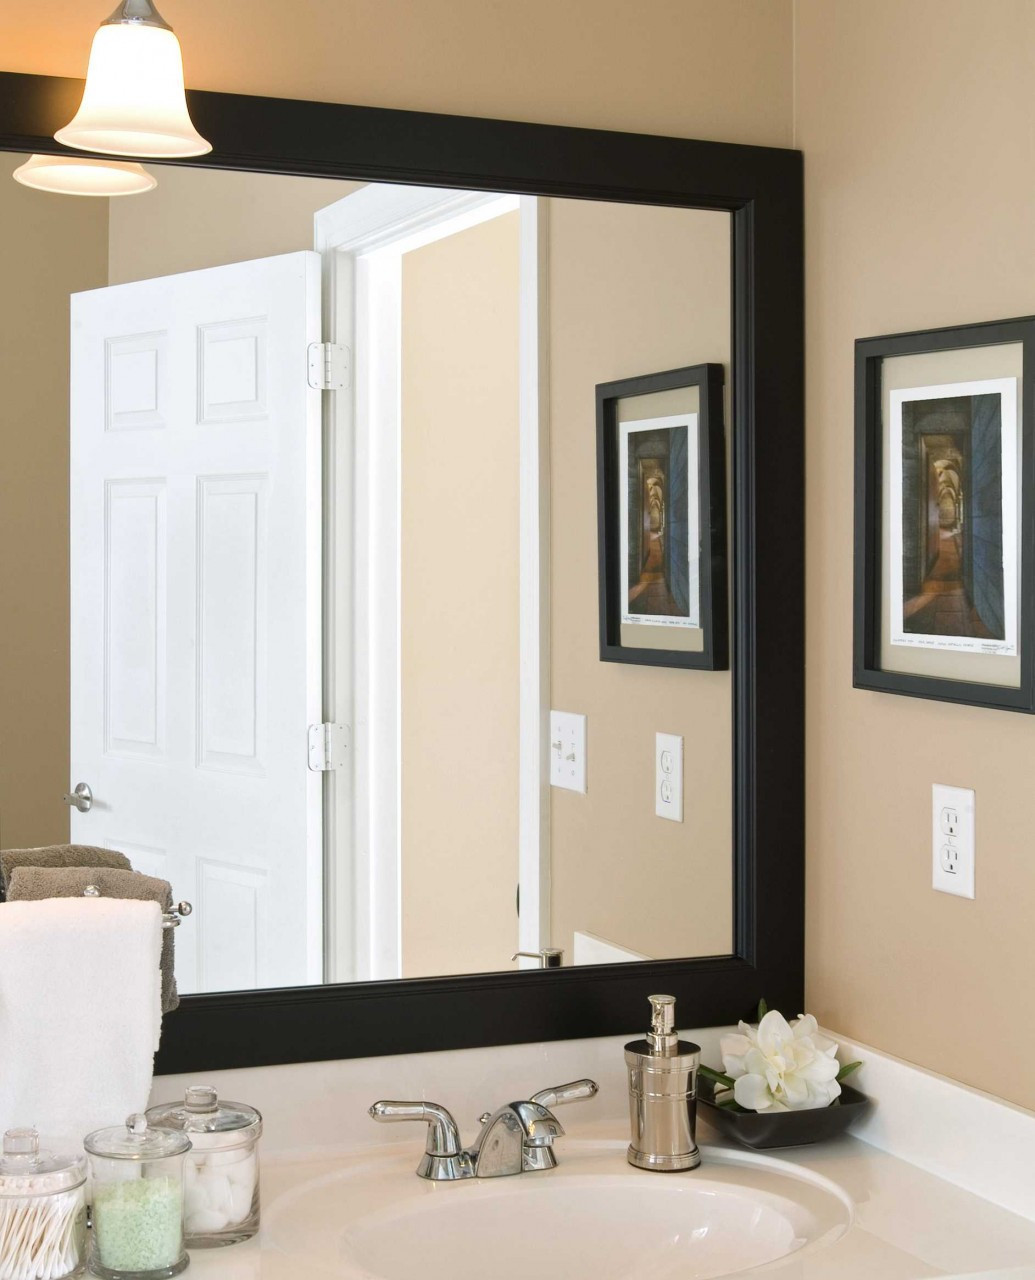 Bmfb50 Bathroom Mirror Frame Beauty Today 2020 11 24 Download Here